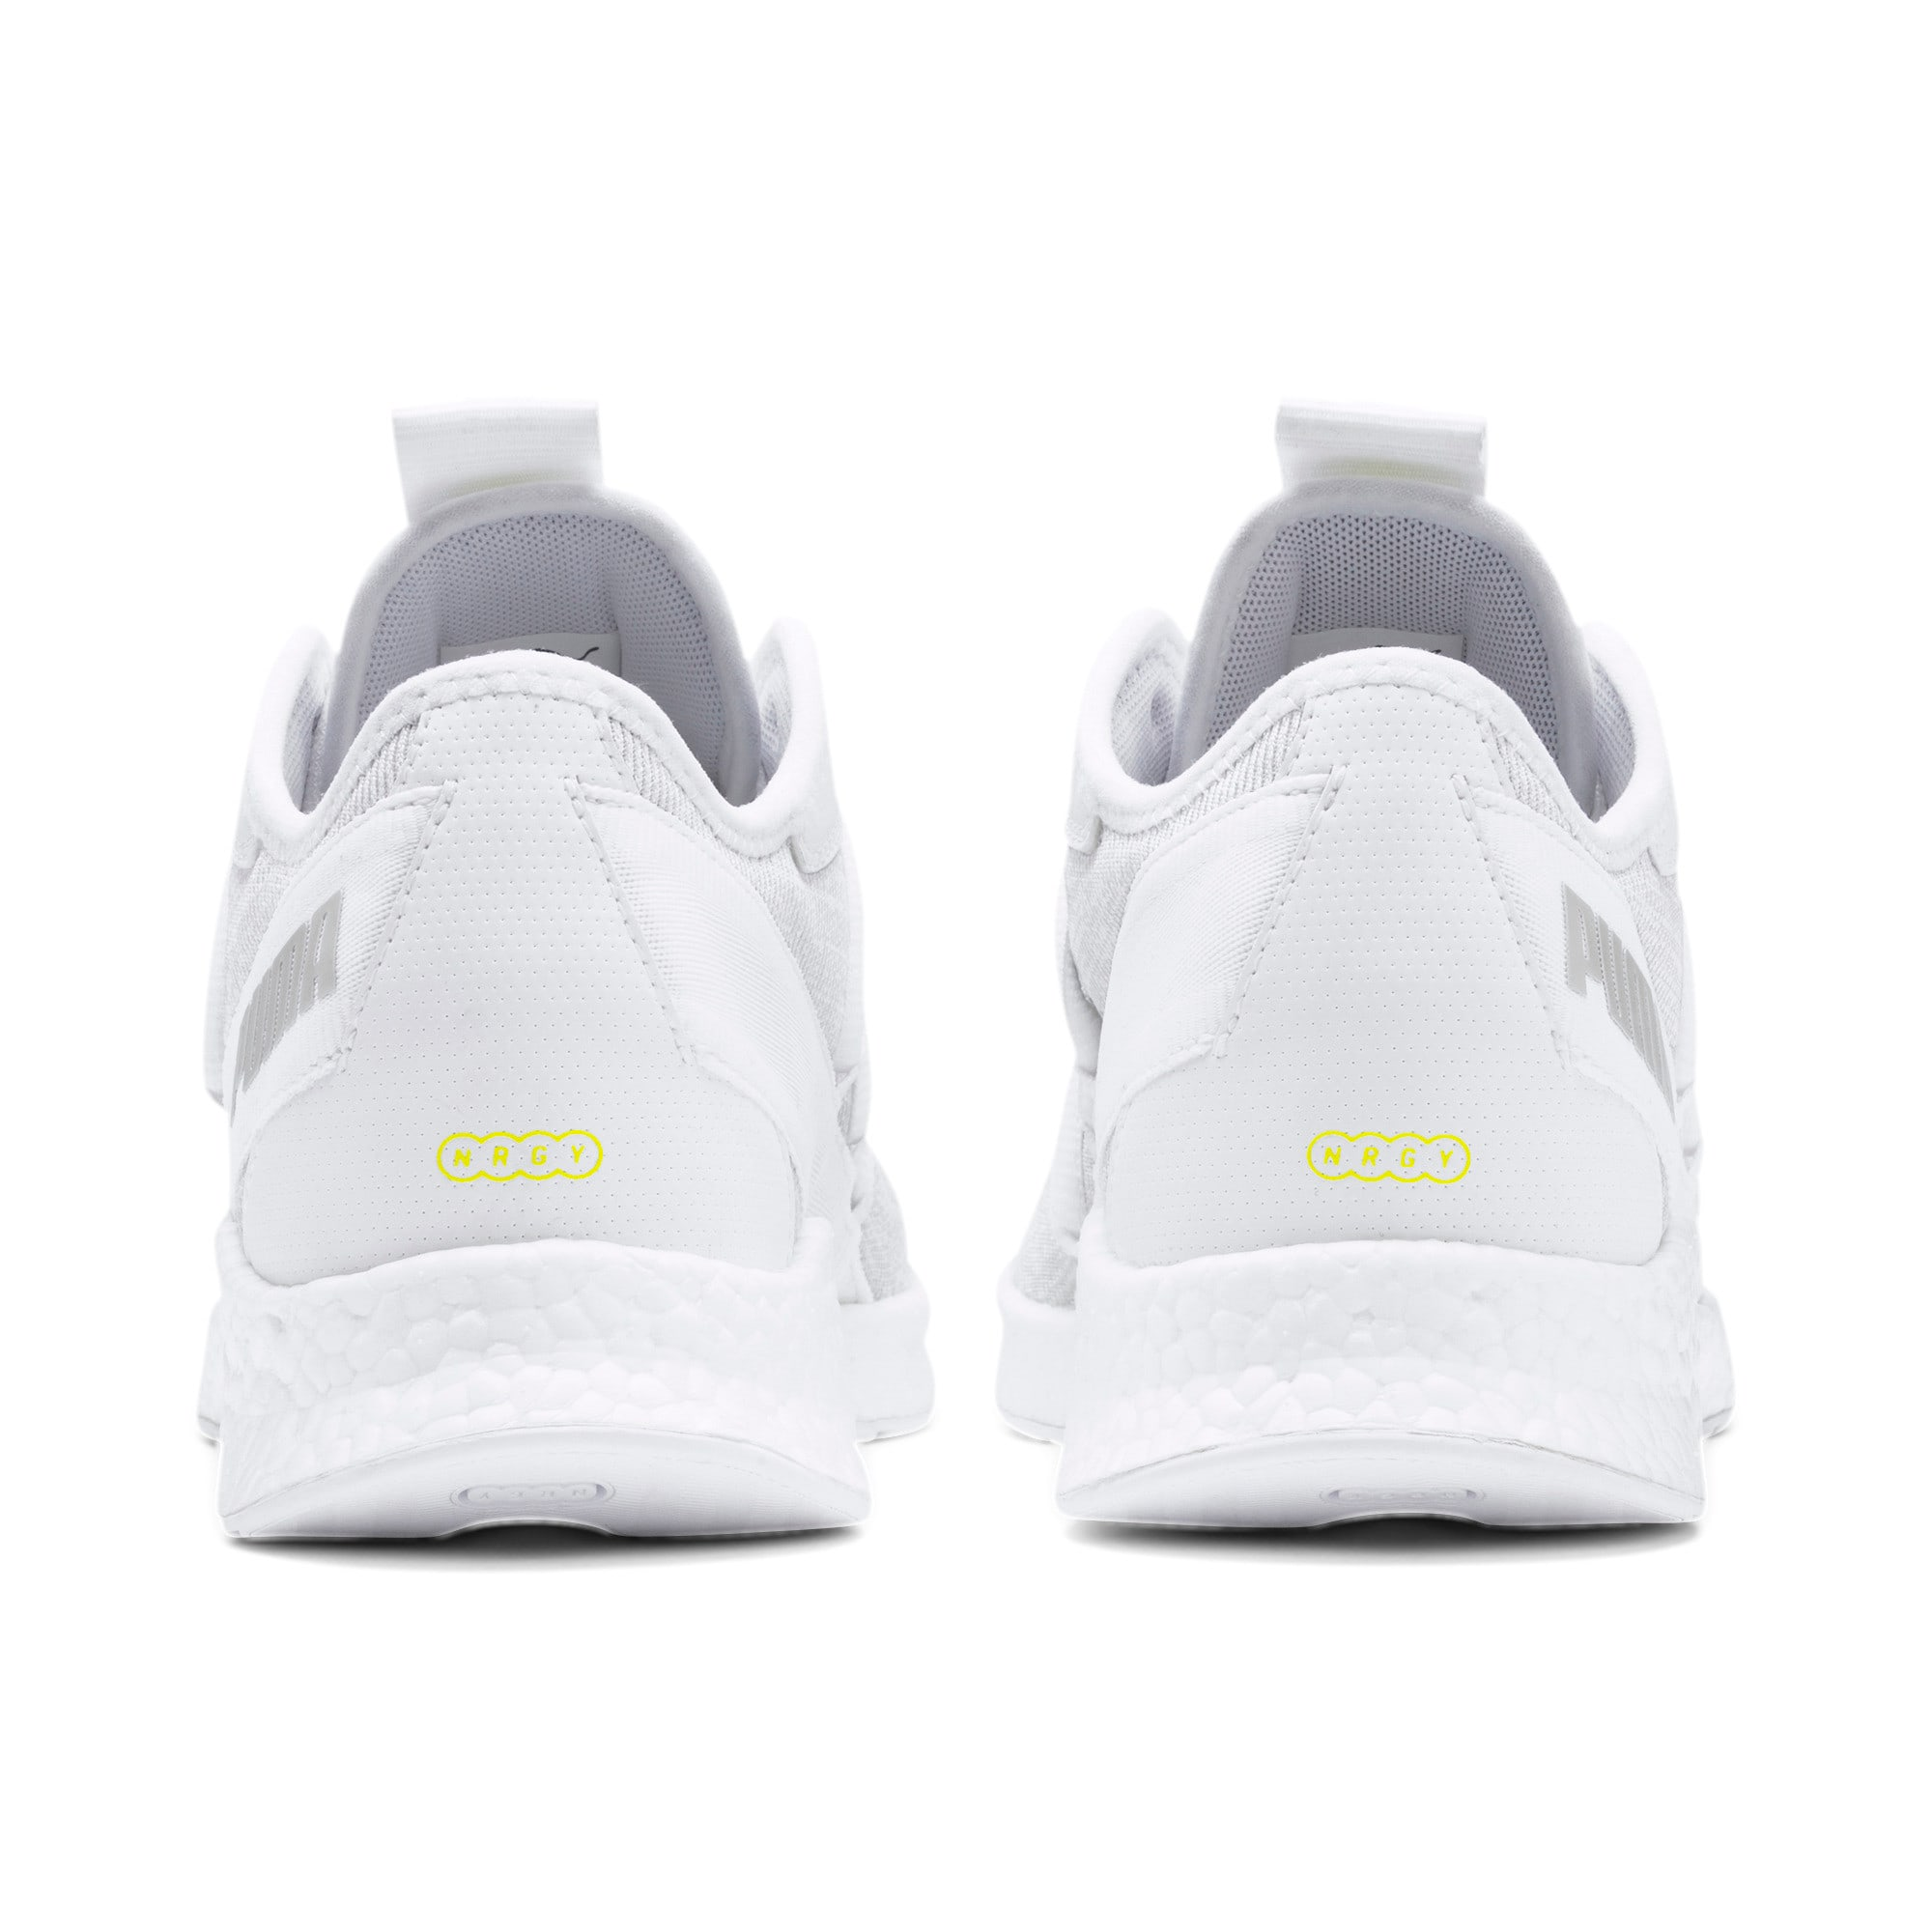 Thumbnail 4 of NRGY Star Knit Trainers, White-Glacier Gray-Yellow, medium